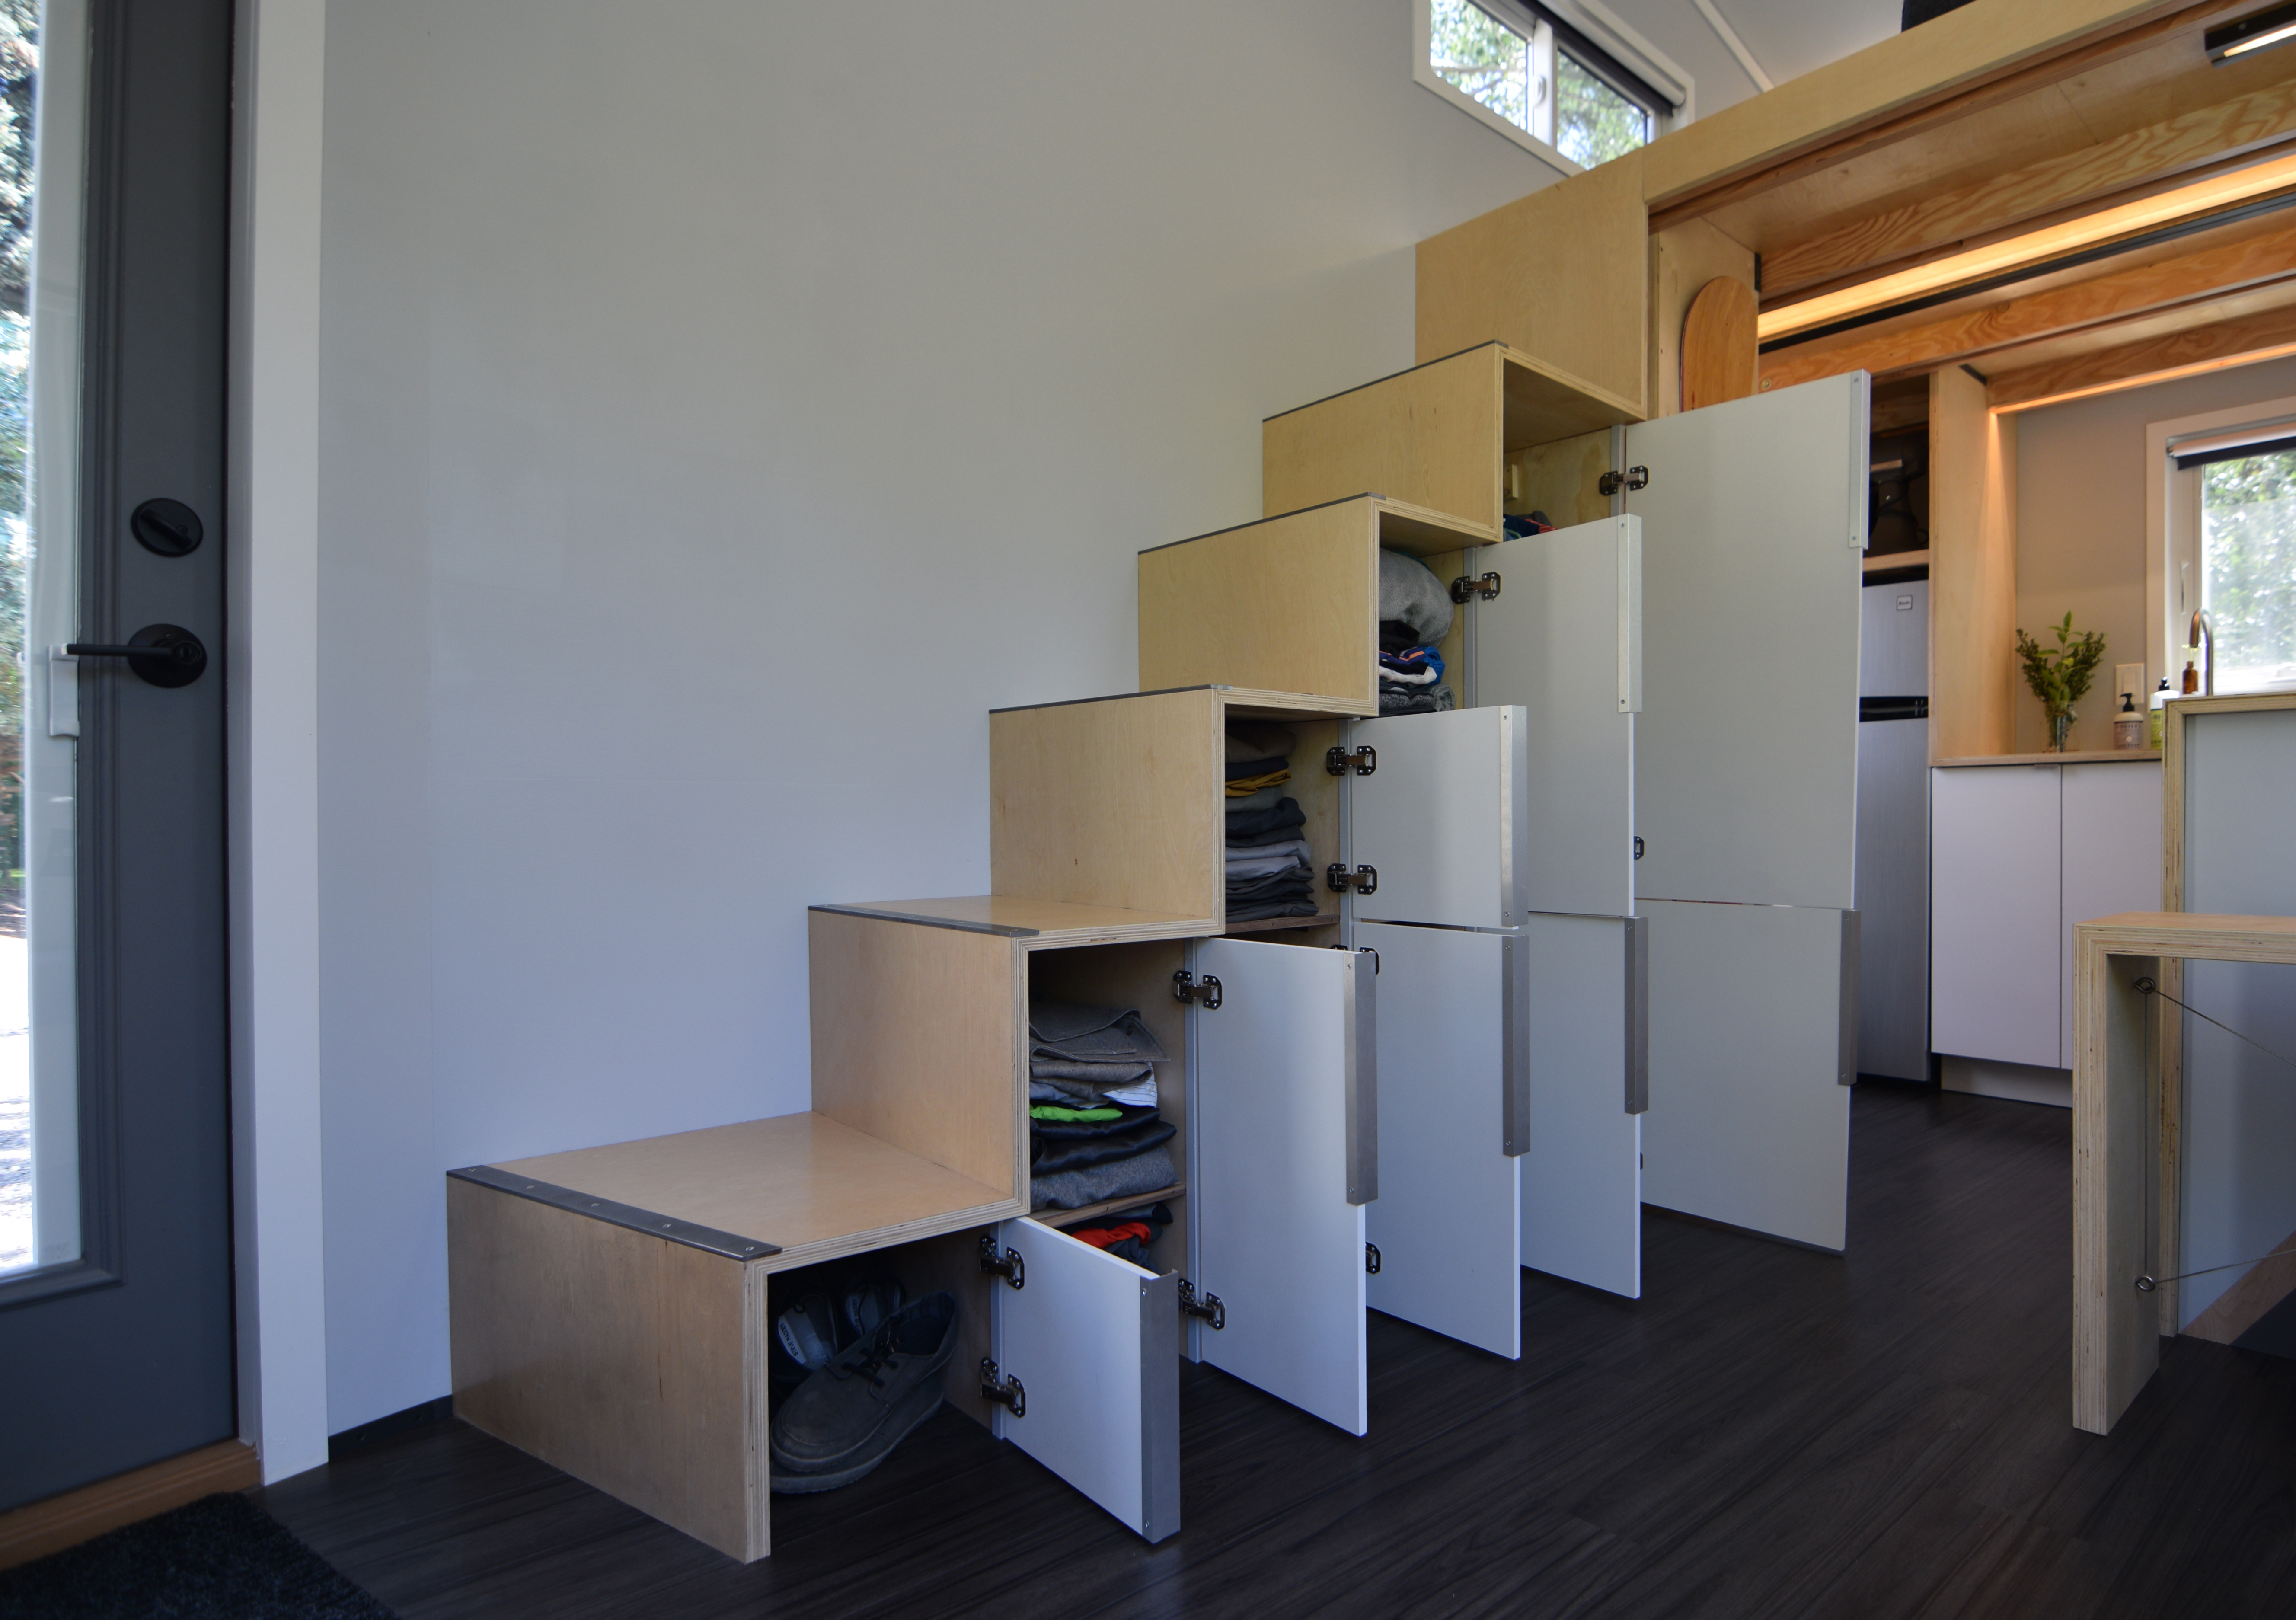 Stair storage & SHED tiny house FINISHED PHOTOS!